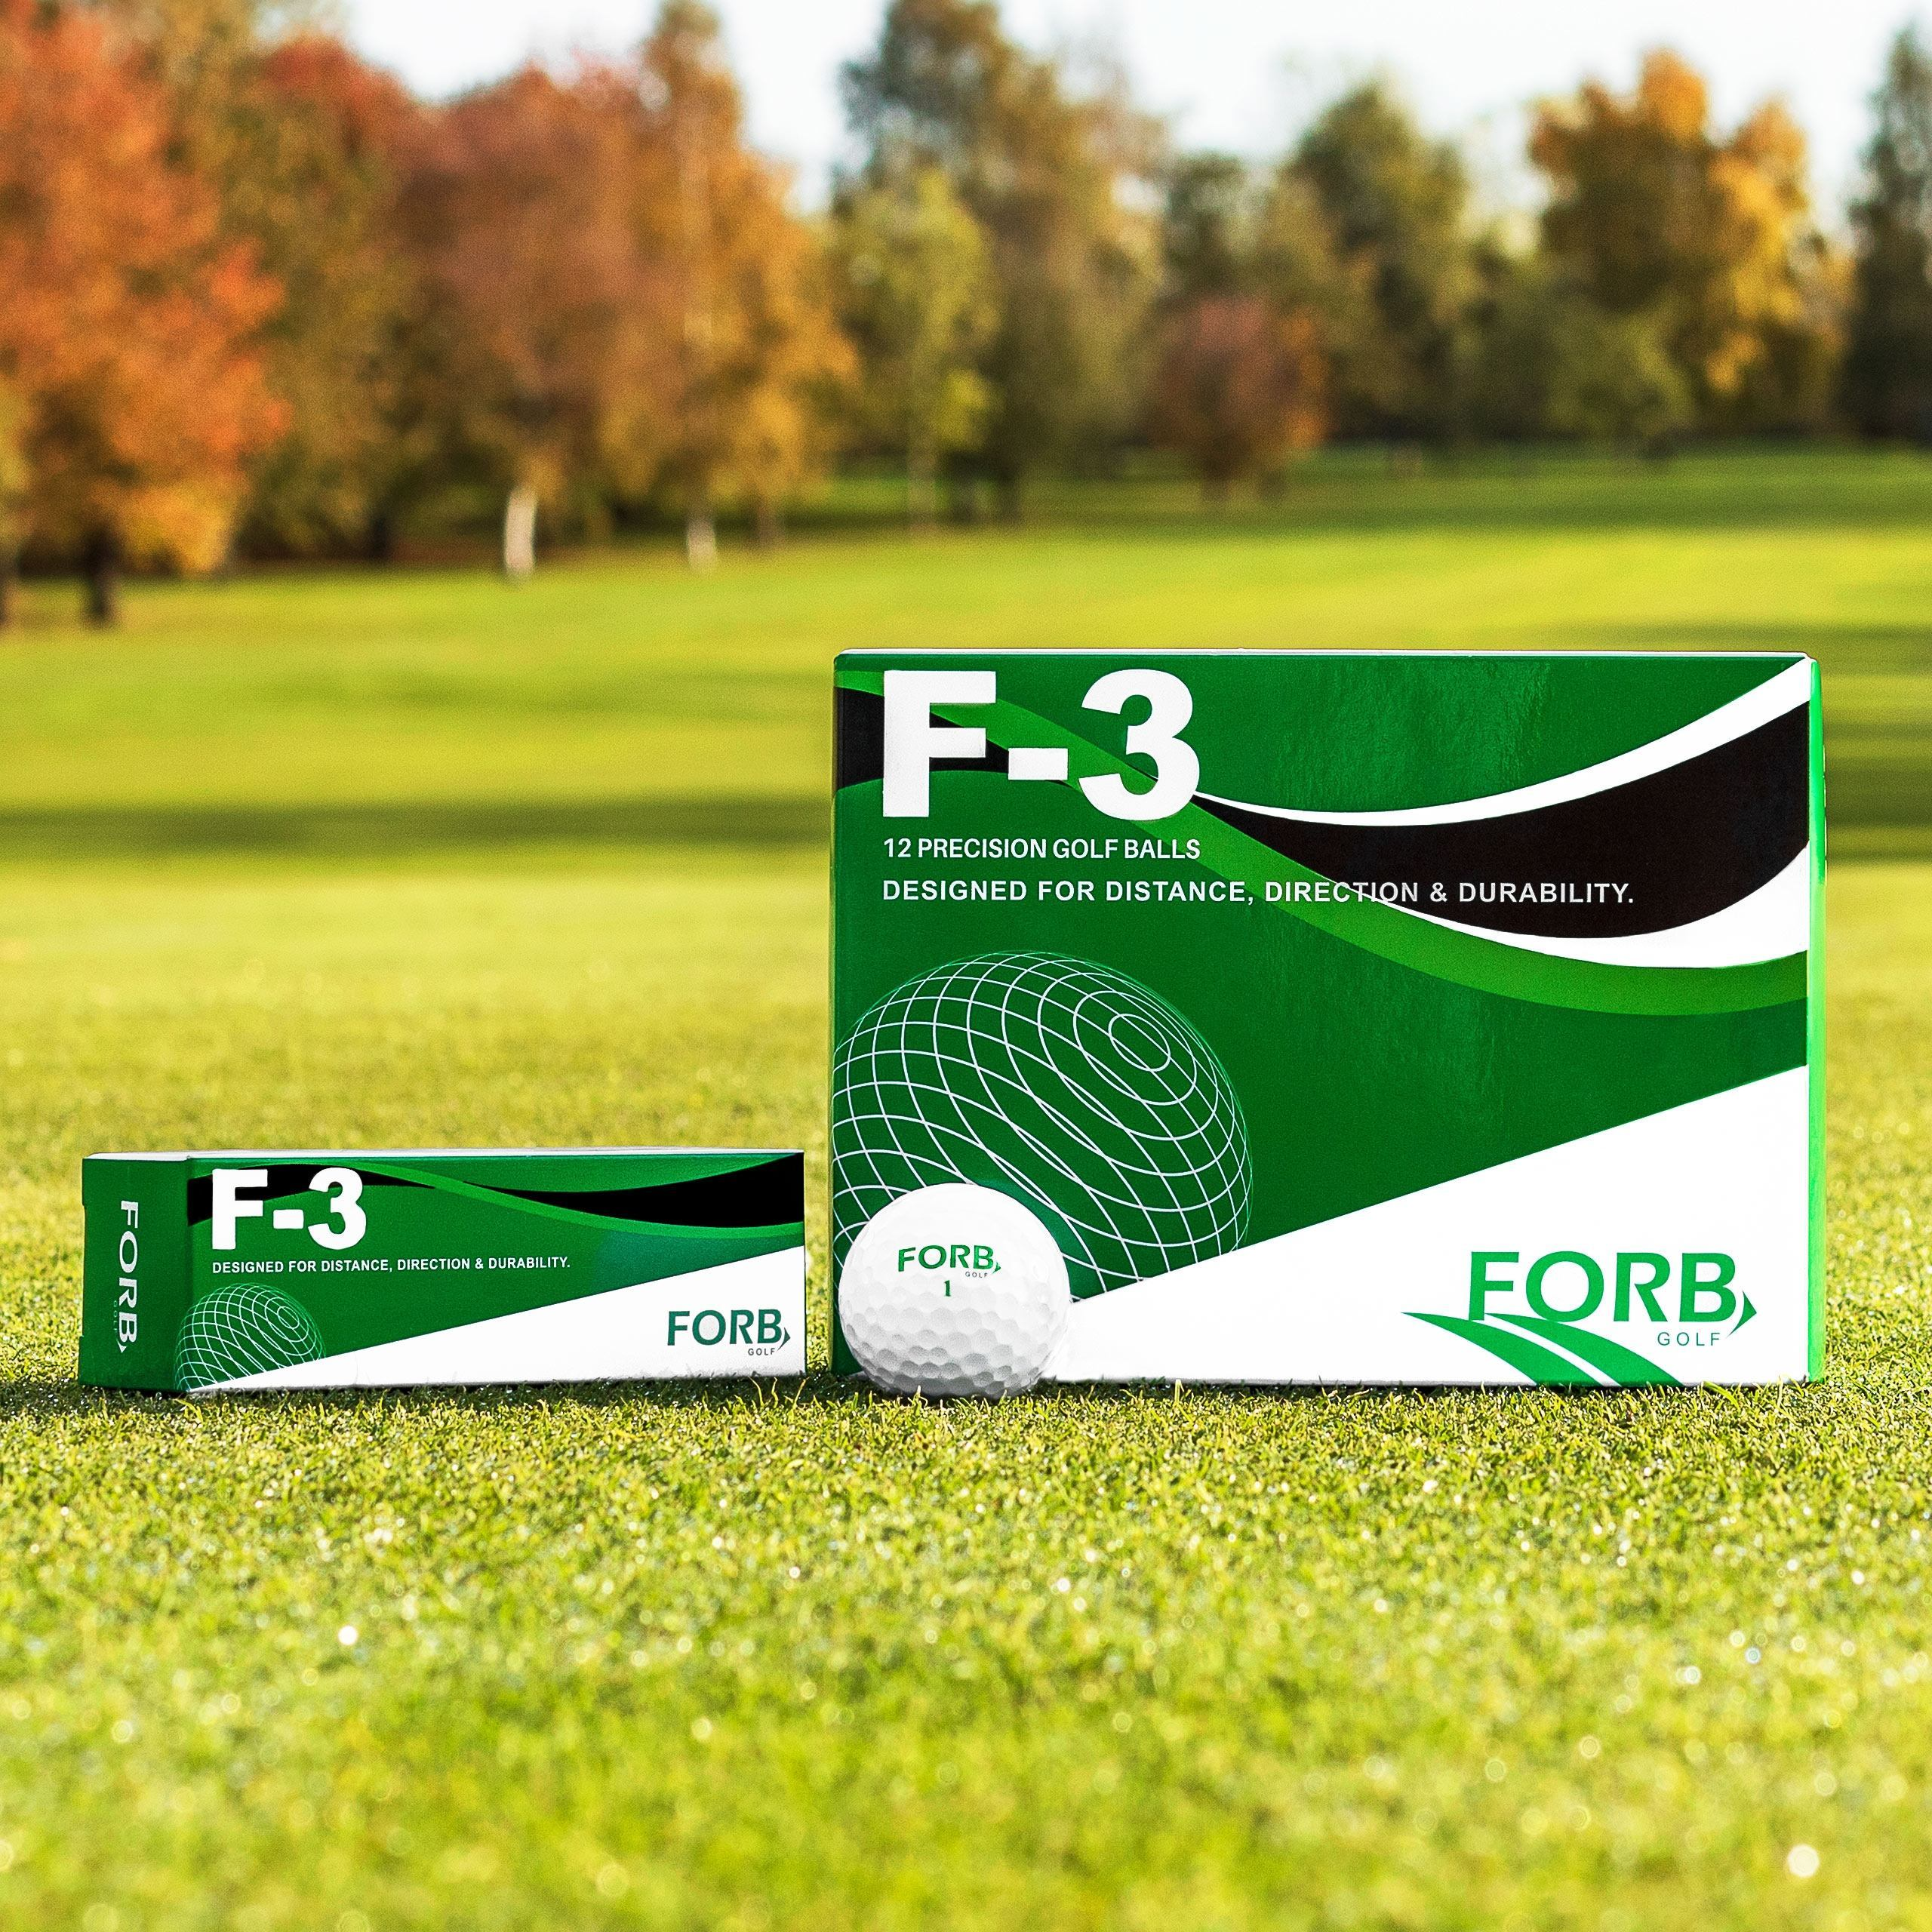 FORB F-3 Golf Balls – Ultra Precision Golf Balls